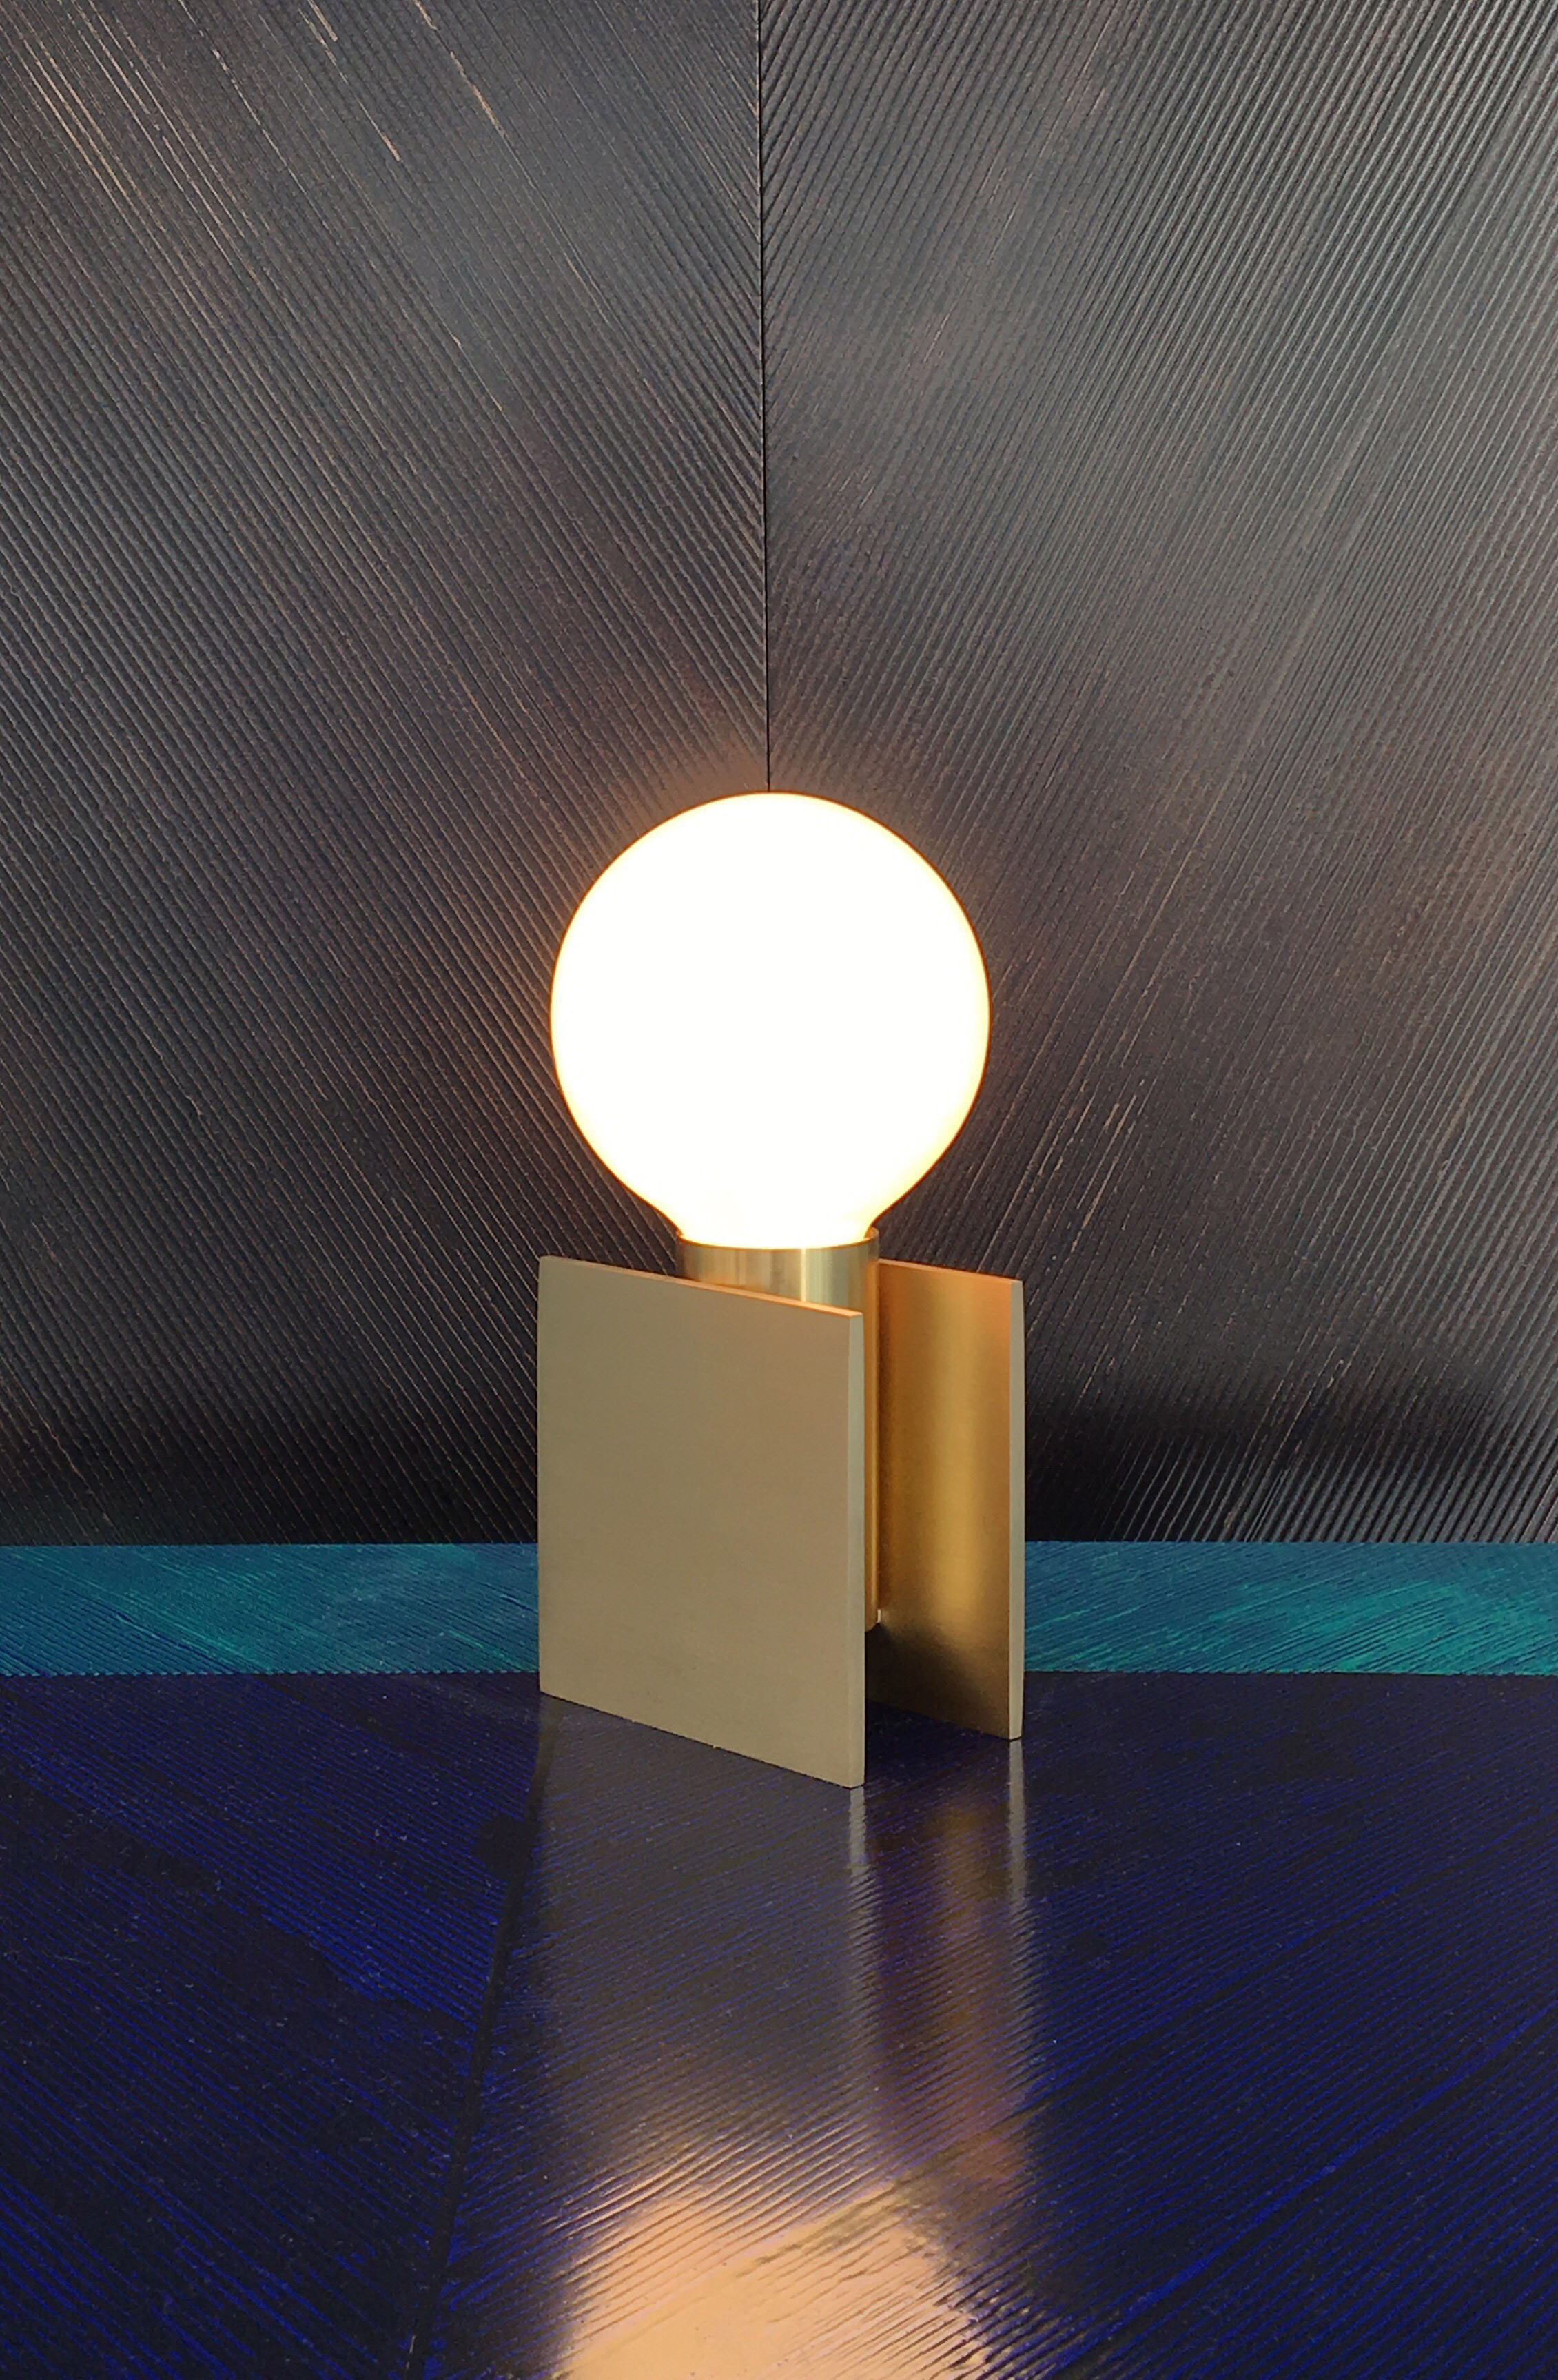 IOI lamp by Samuel Accoceberry and Bruce cecere